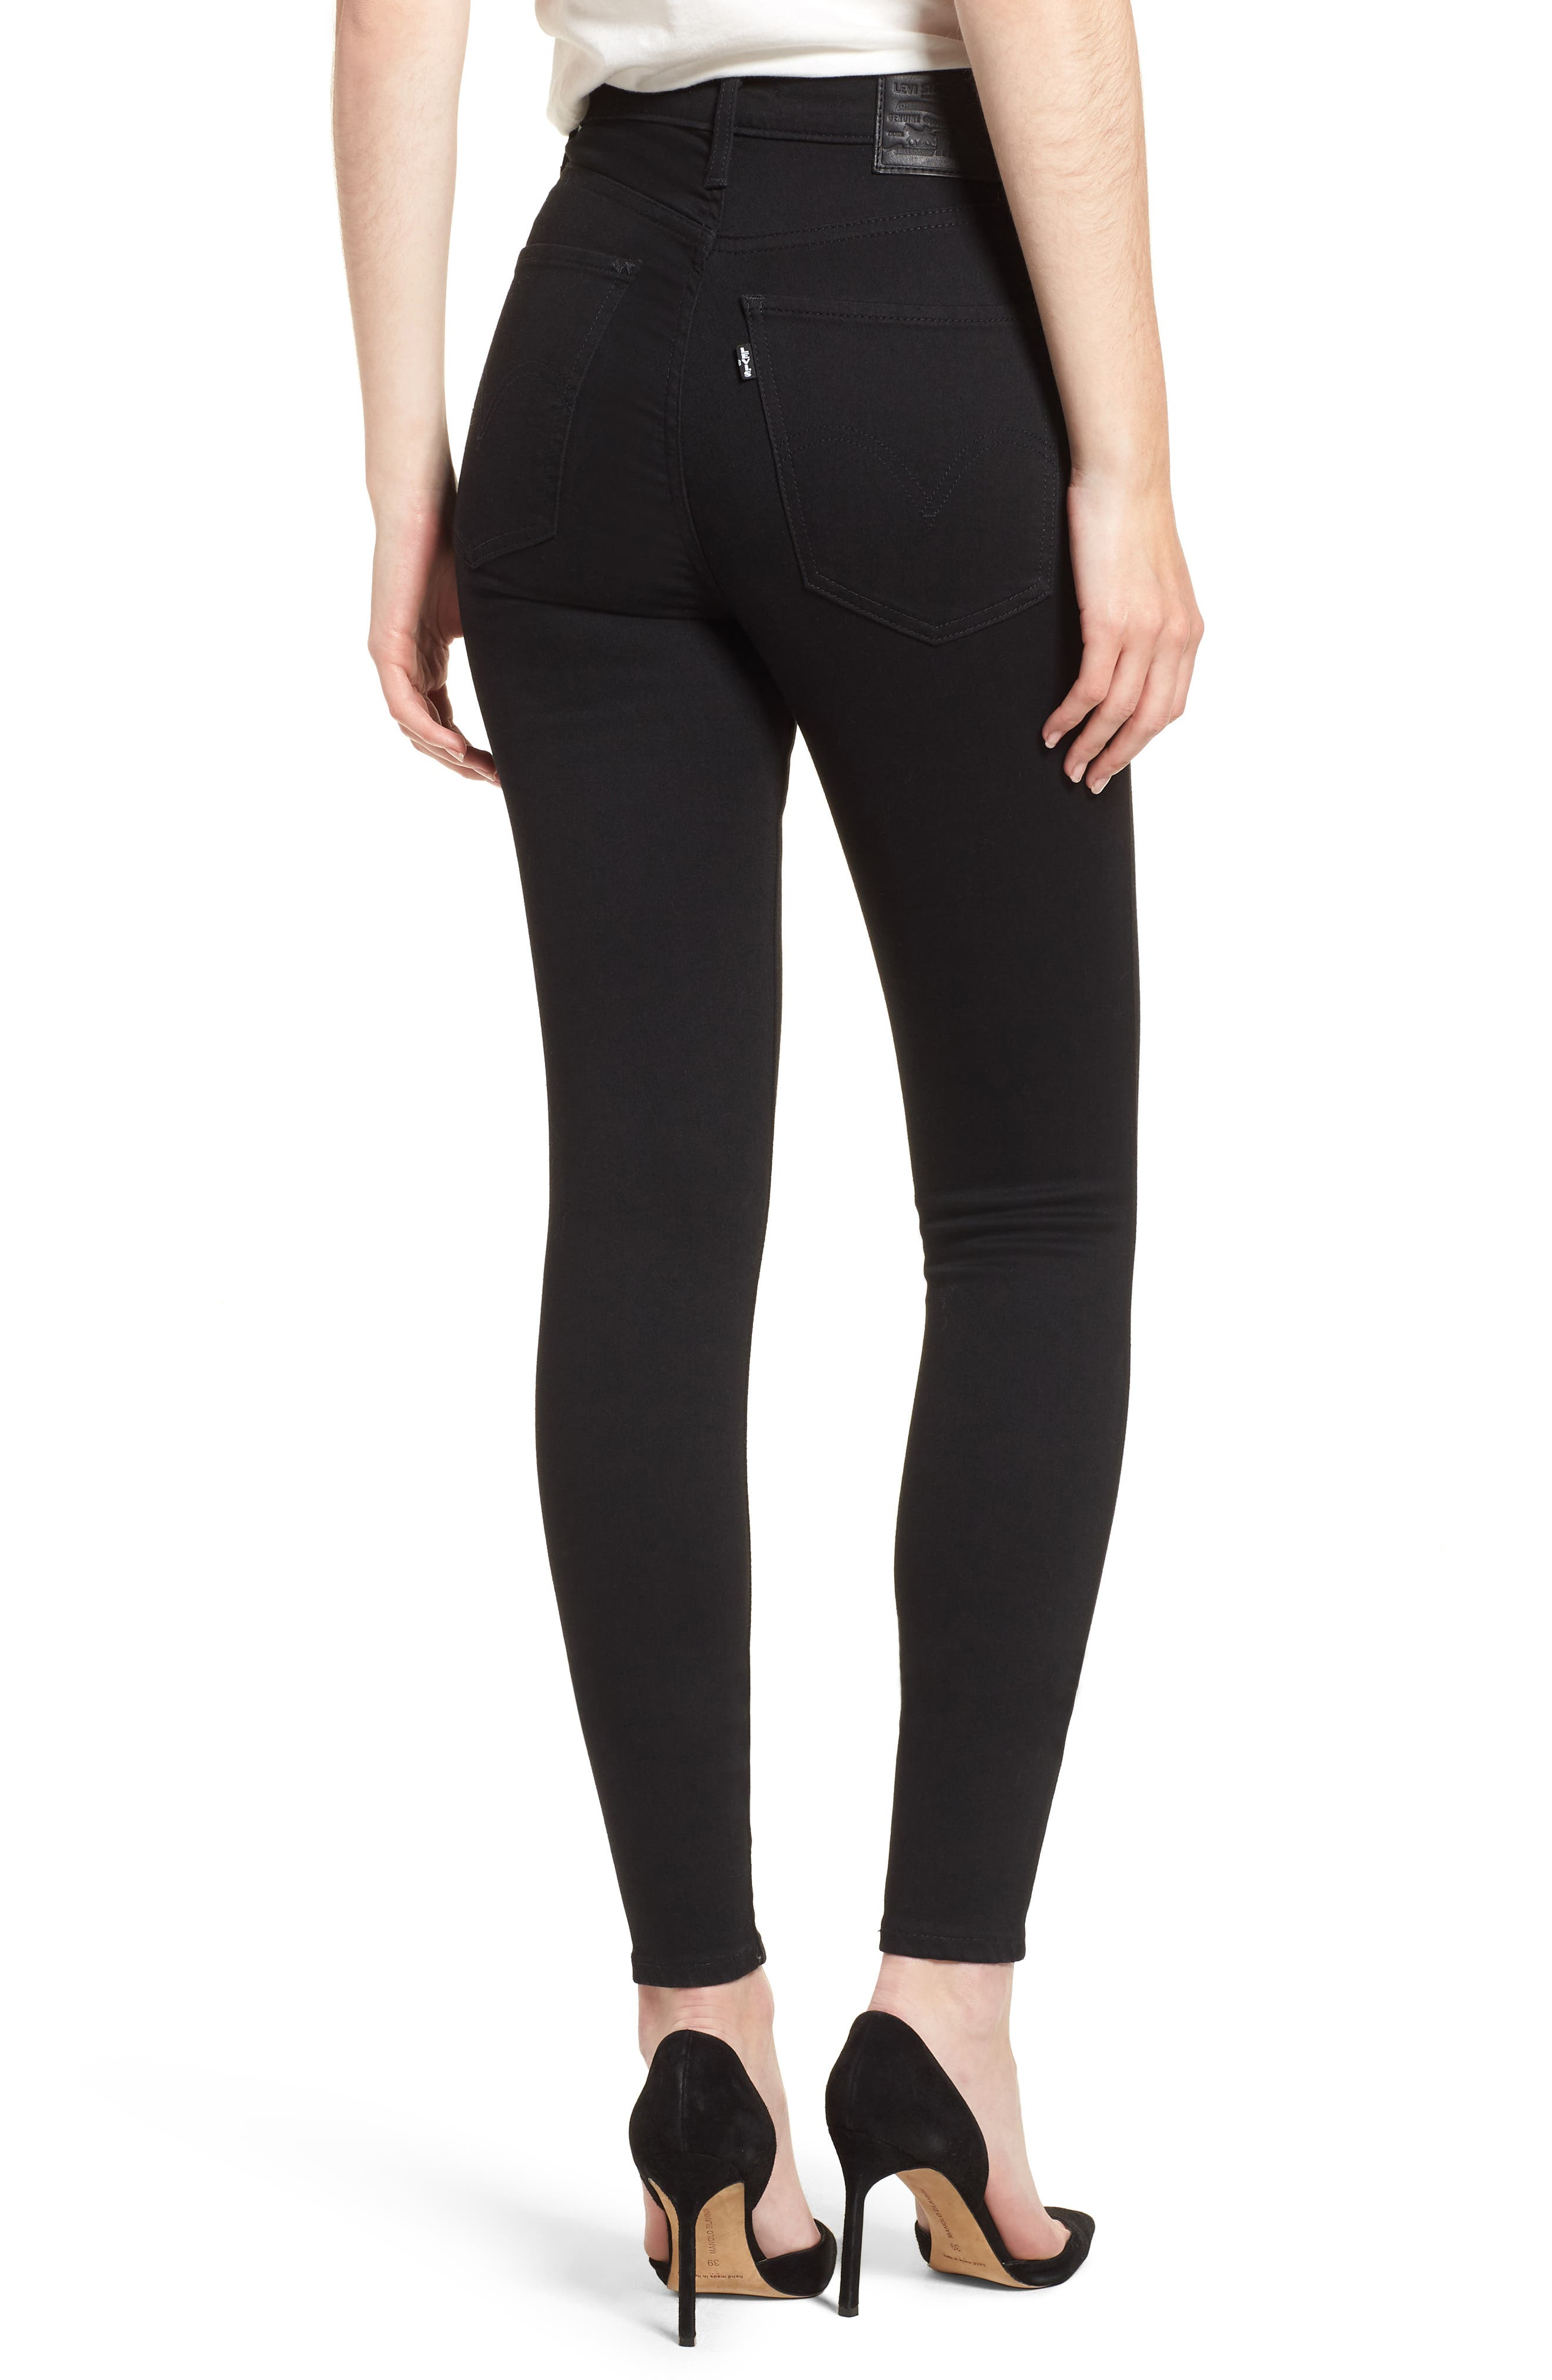 LEVI'S<SUP>®</SUP>, Mile High Super Skinny Jeans, Alternate thumbnail 2, color, BLACK GALAXY